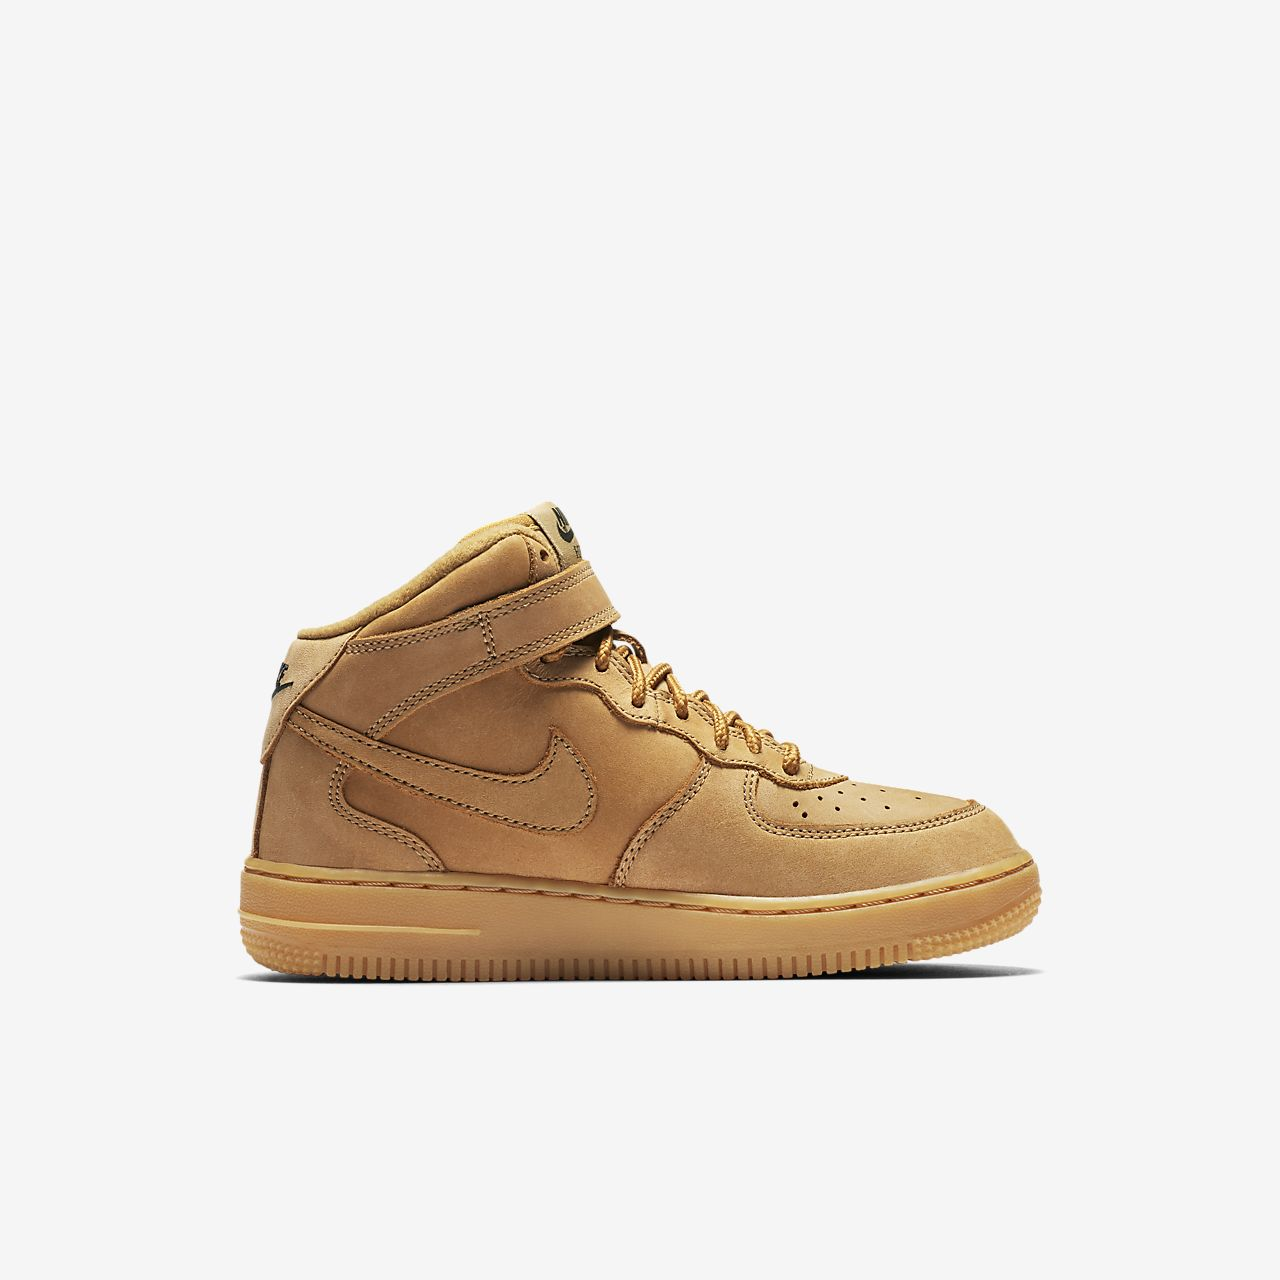 nike air force 1 mid wheat womens plus size stores near me